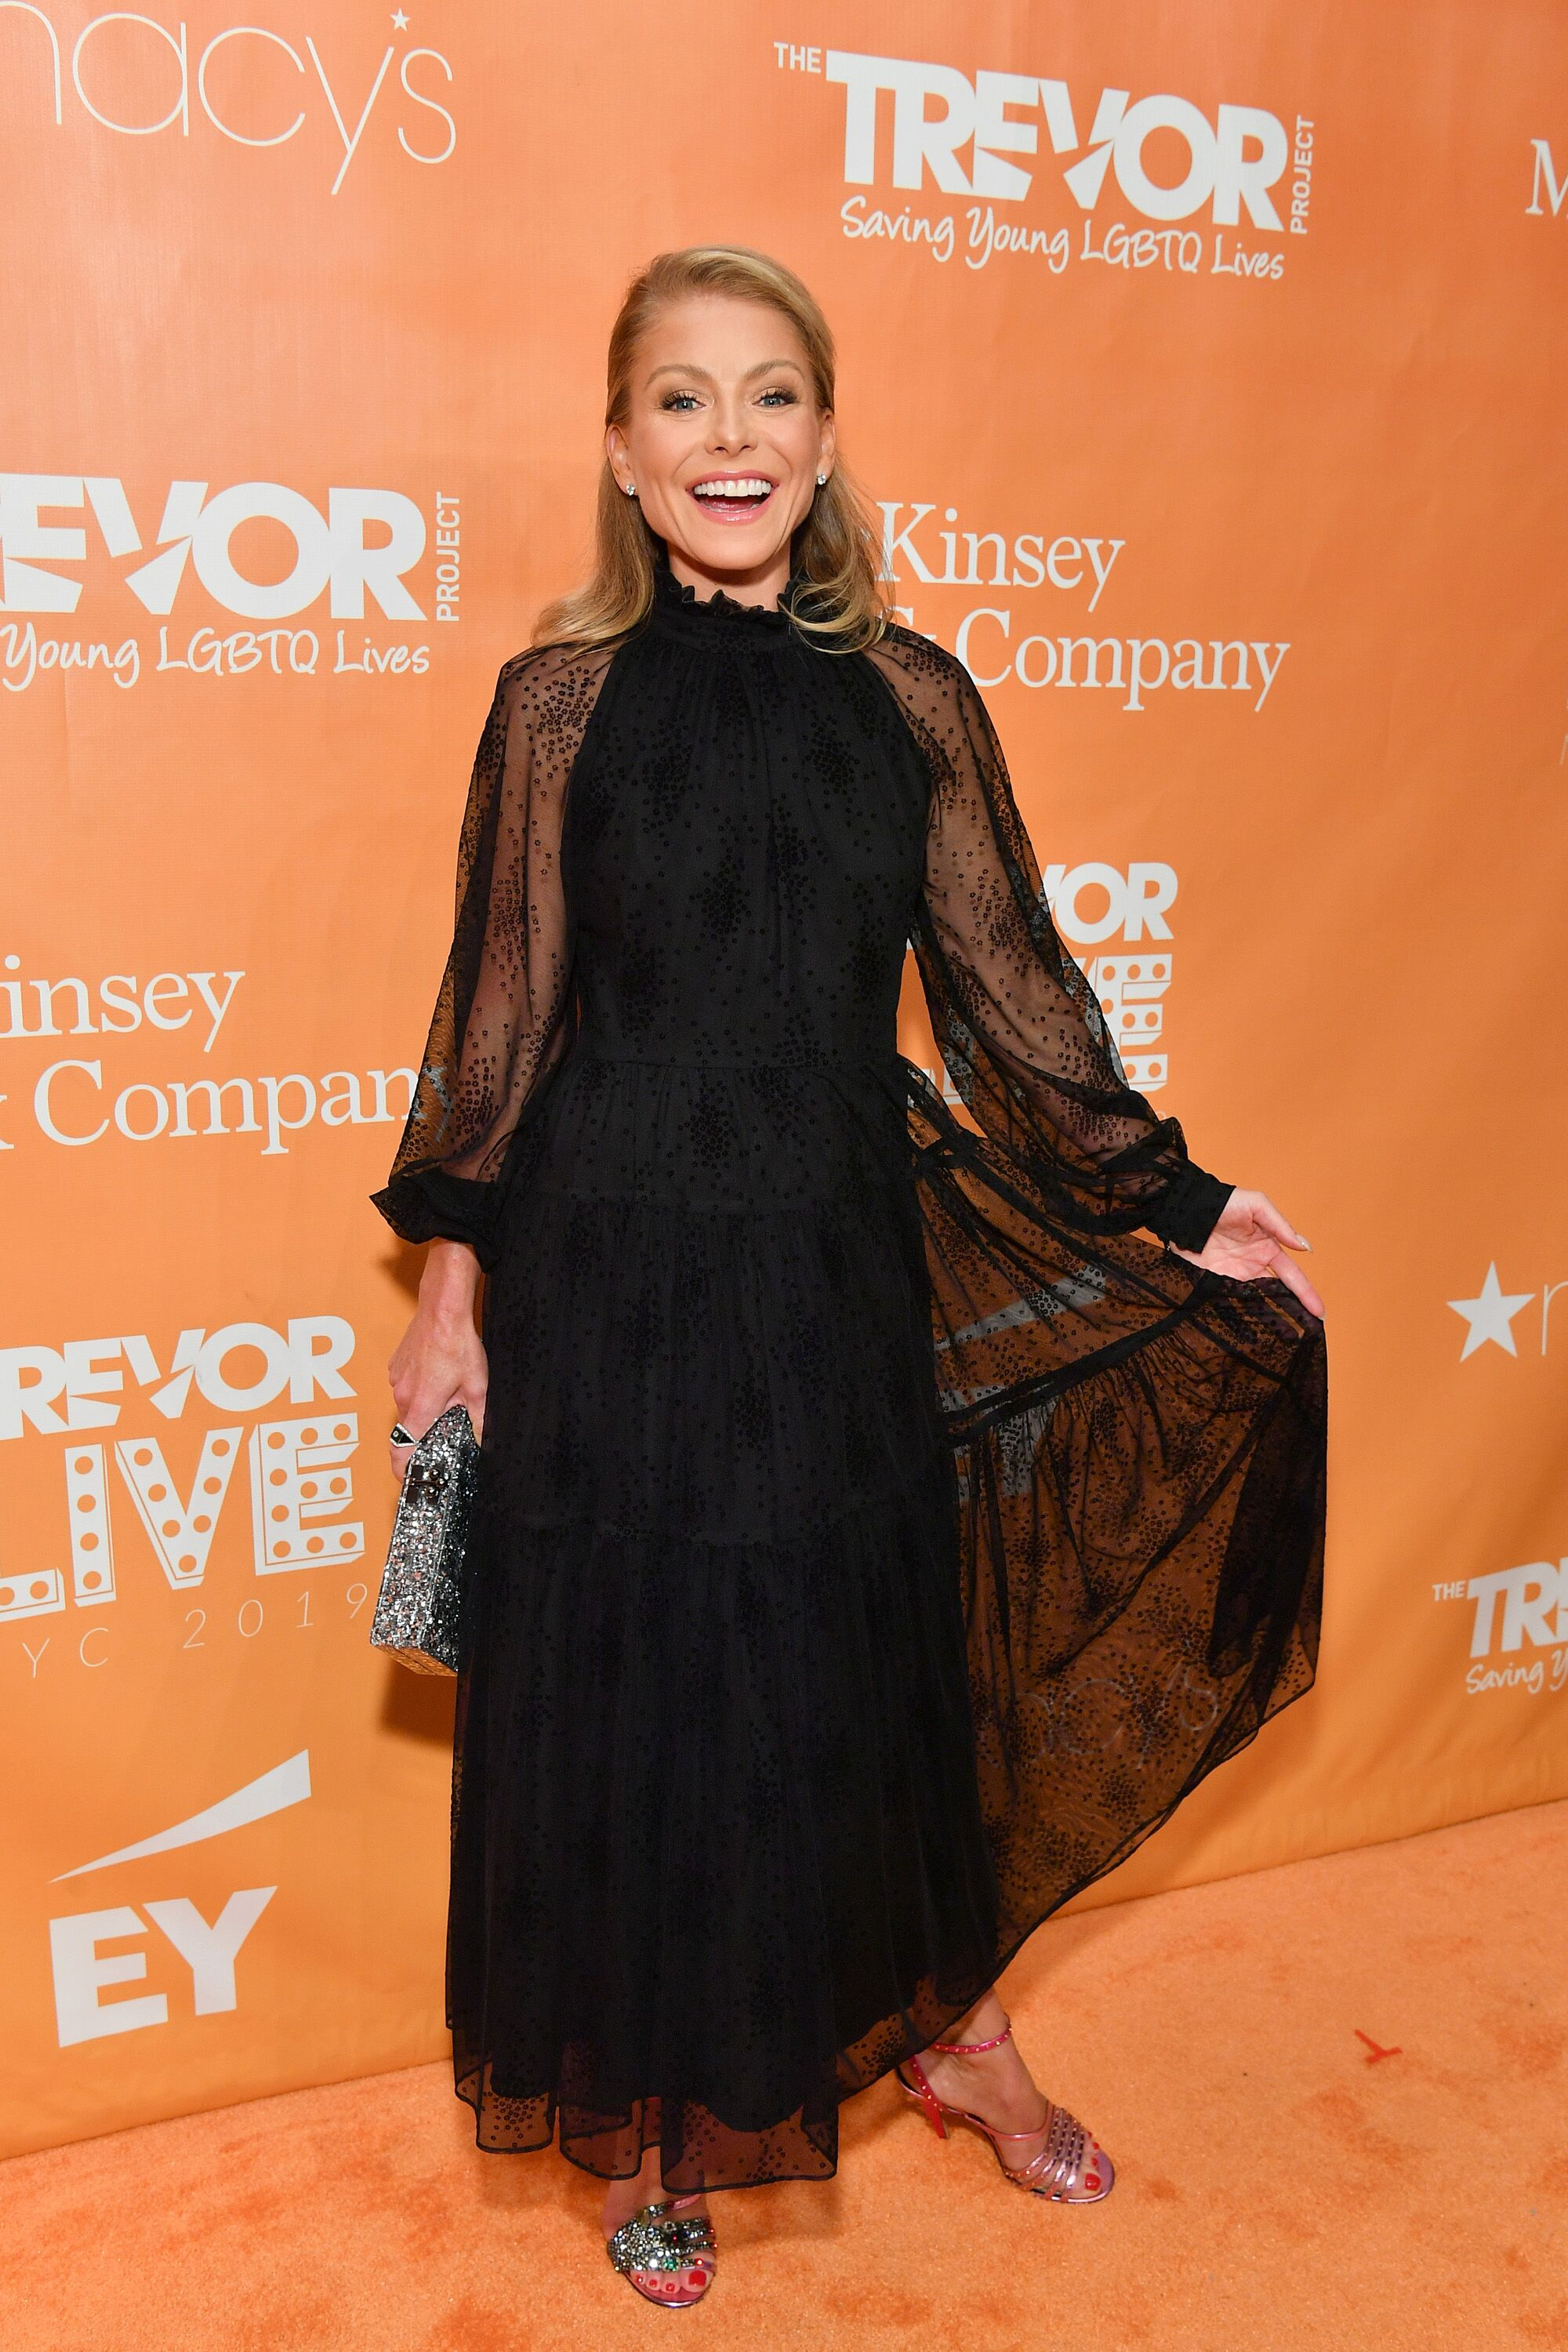 Kelly Ripa at the TrevorLIVE New York Gala on June 17, 2019, in New York City | Photo: Getty Images